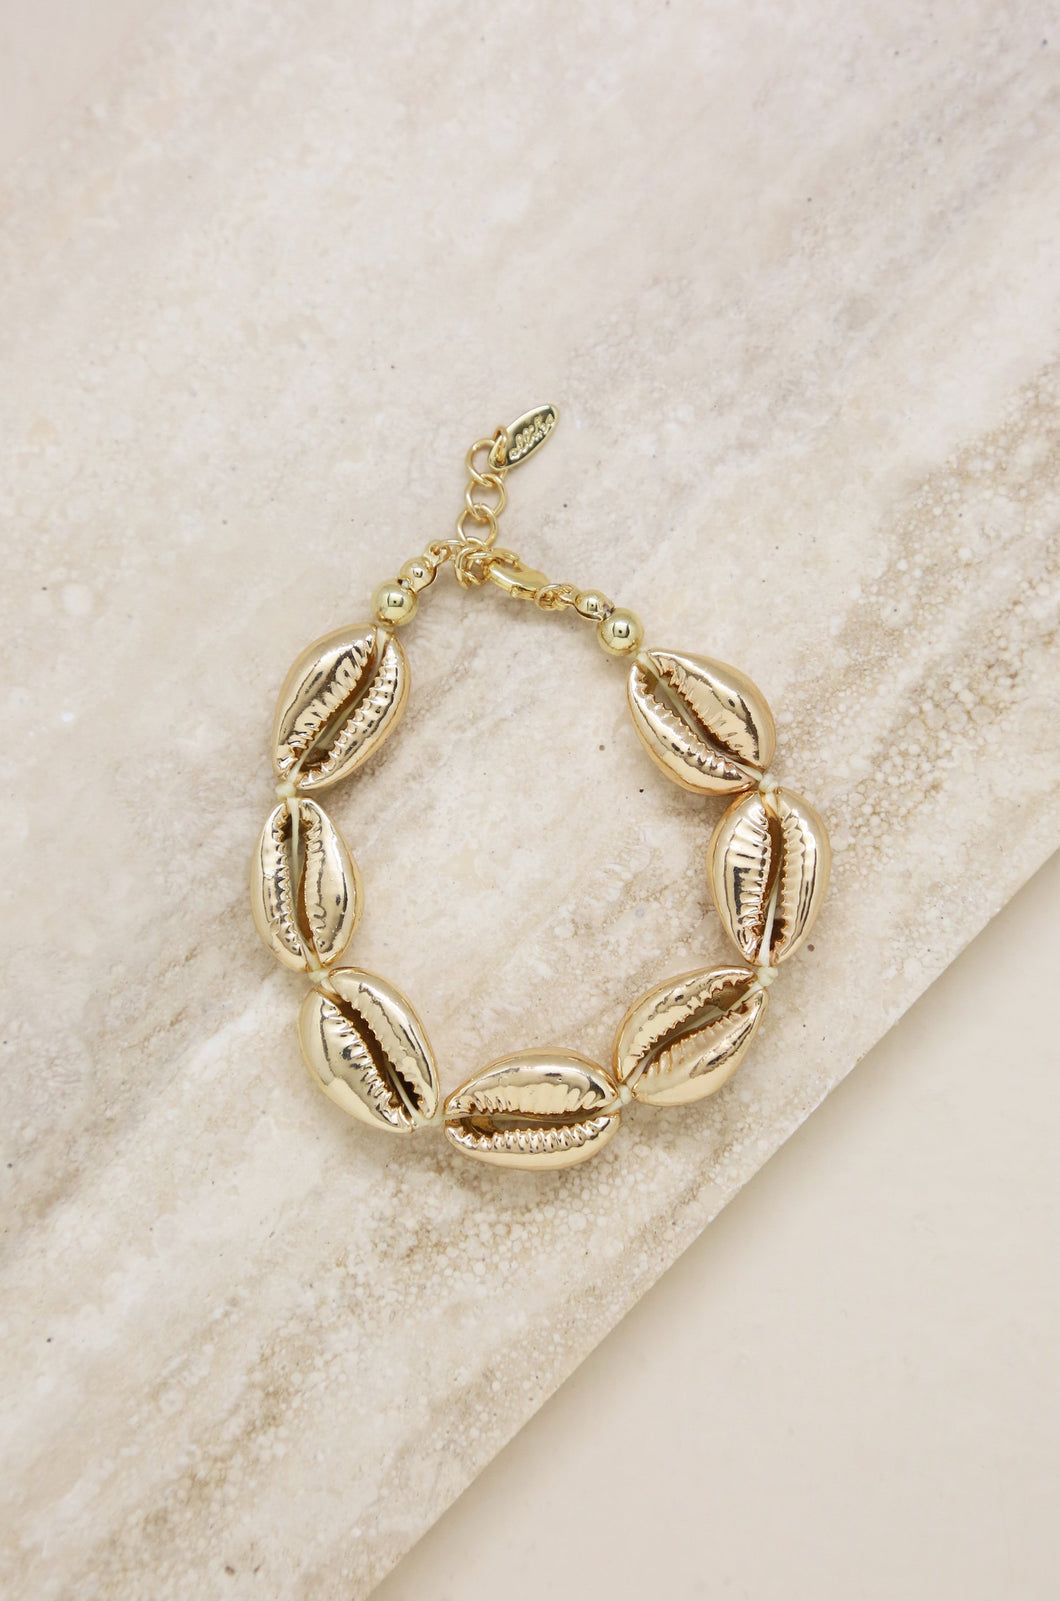 Seven Shells 18k Gold Plated Bracelet